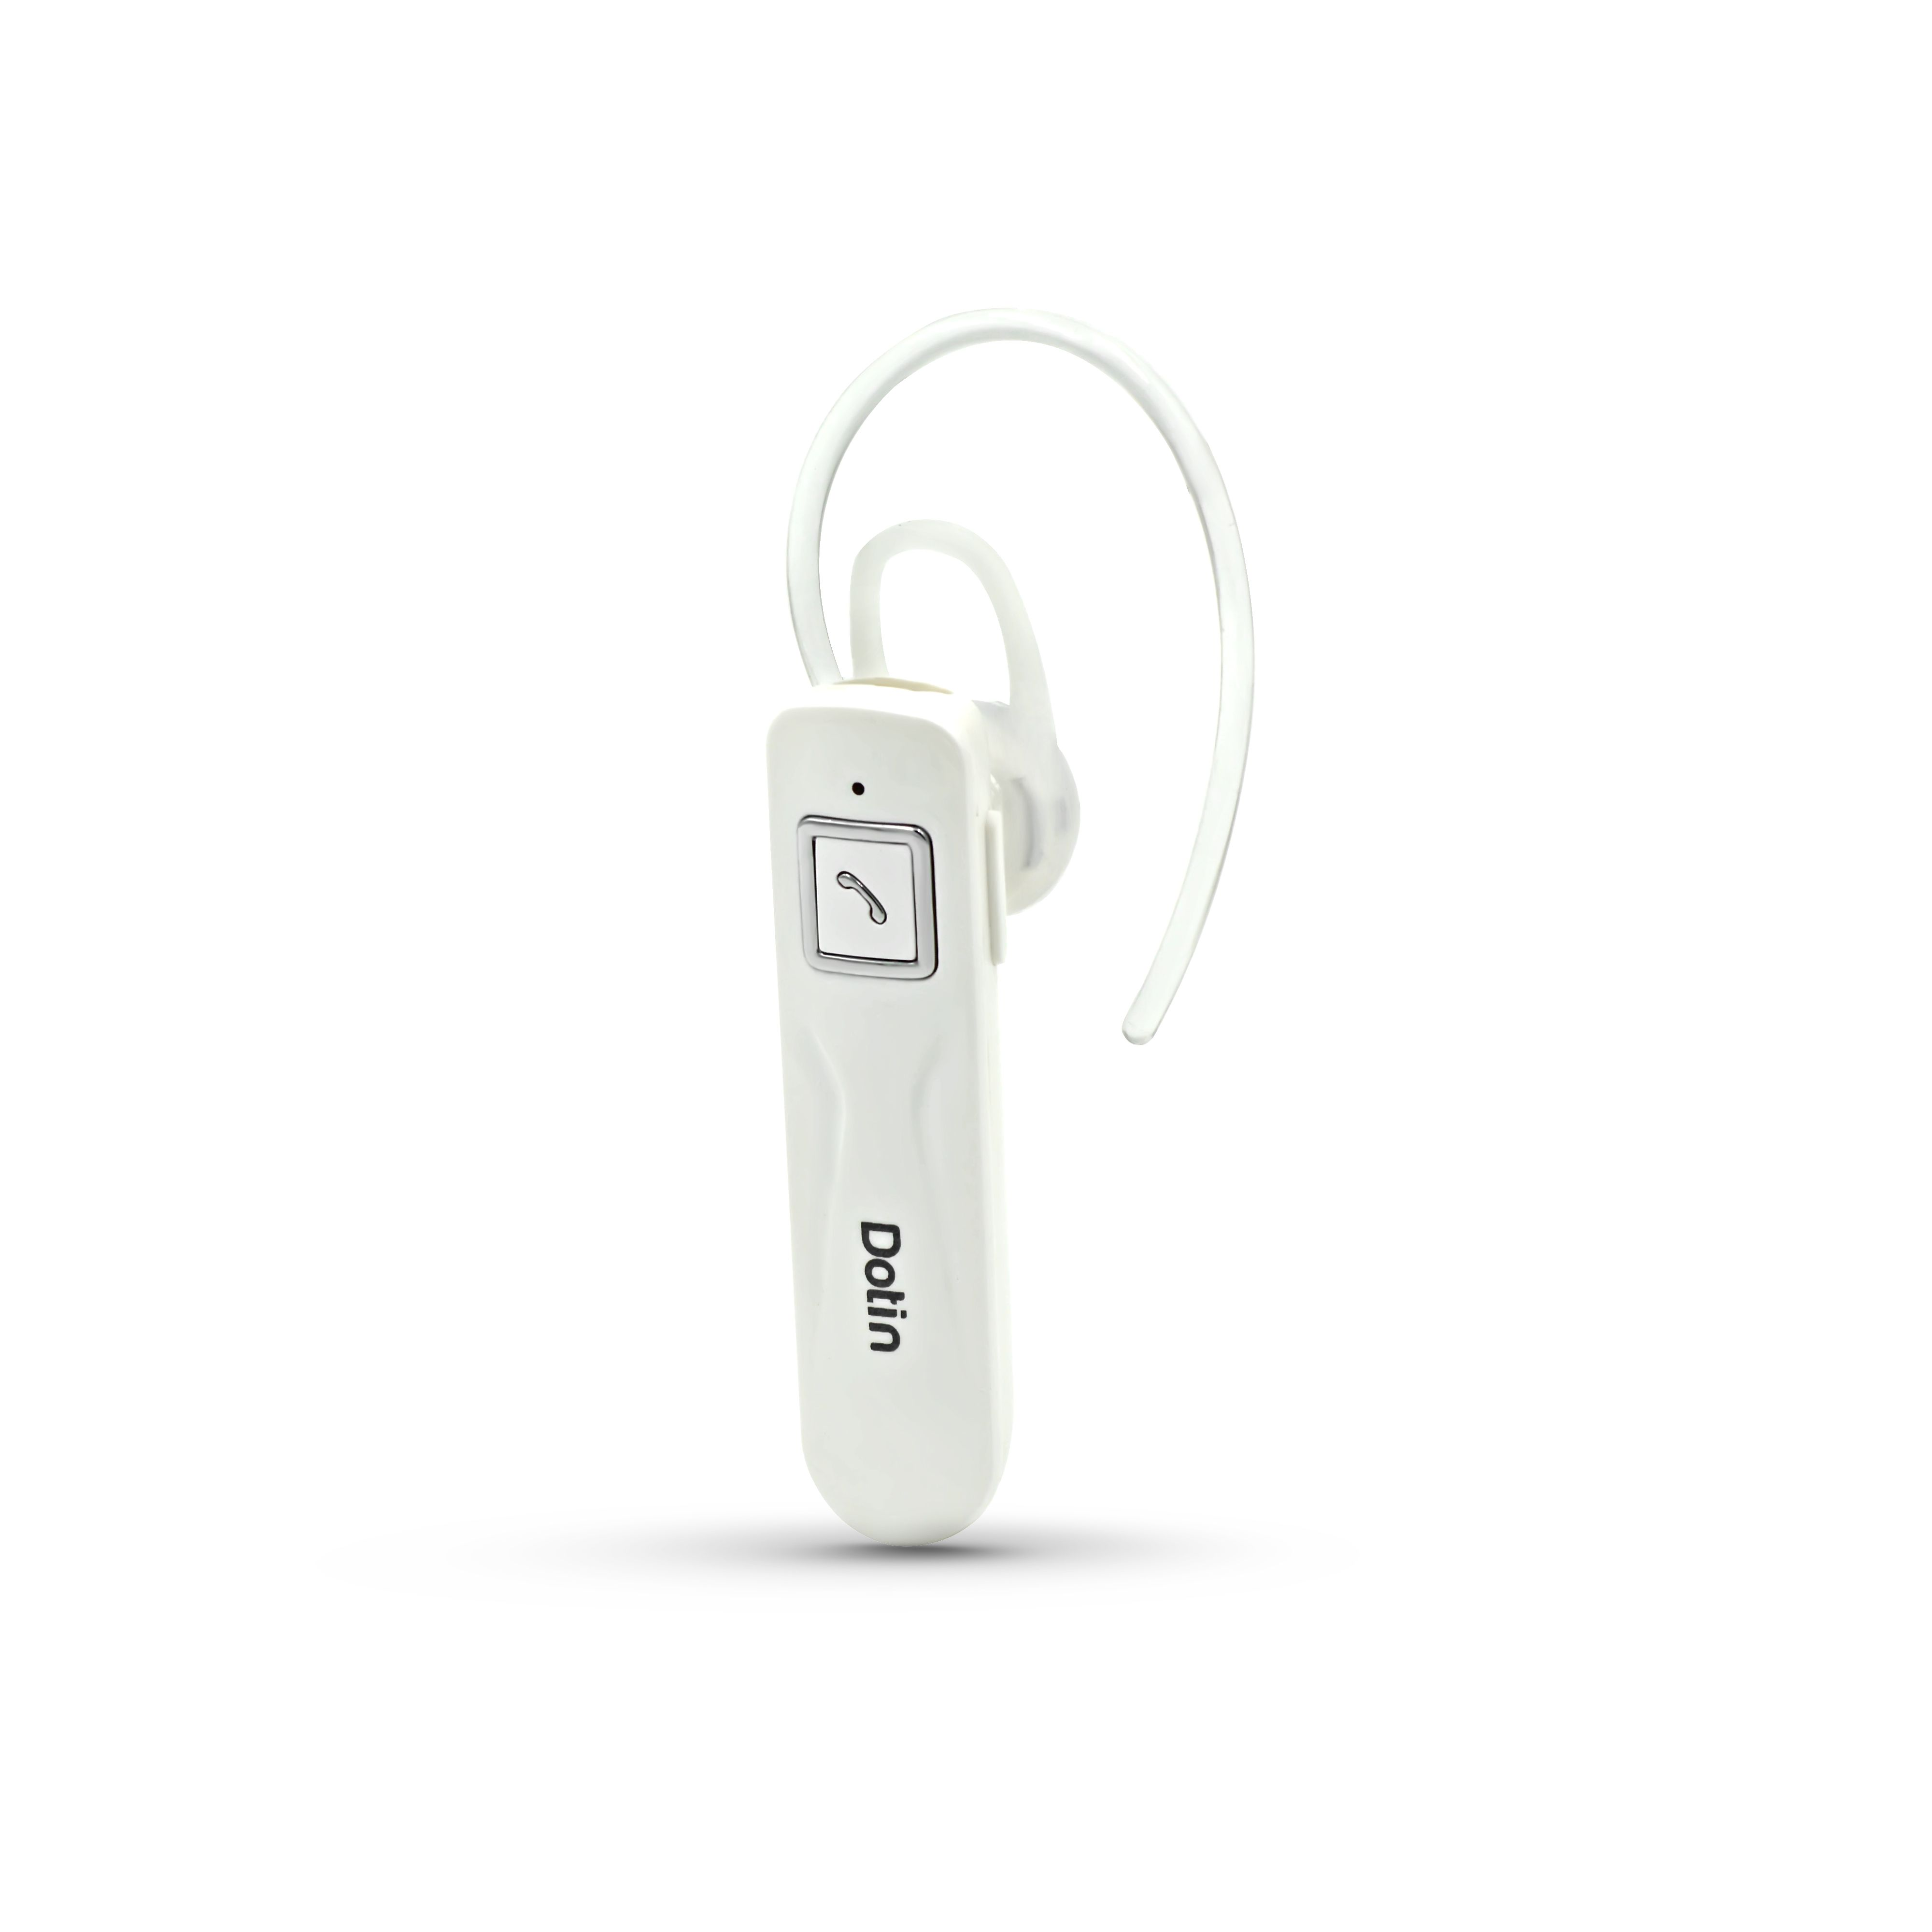 Dotin Dt A8 Multi Purpose Wireless Bluetooth Headset With Mic White Color Bluetooth Headset